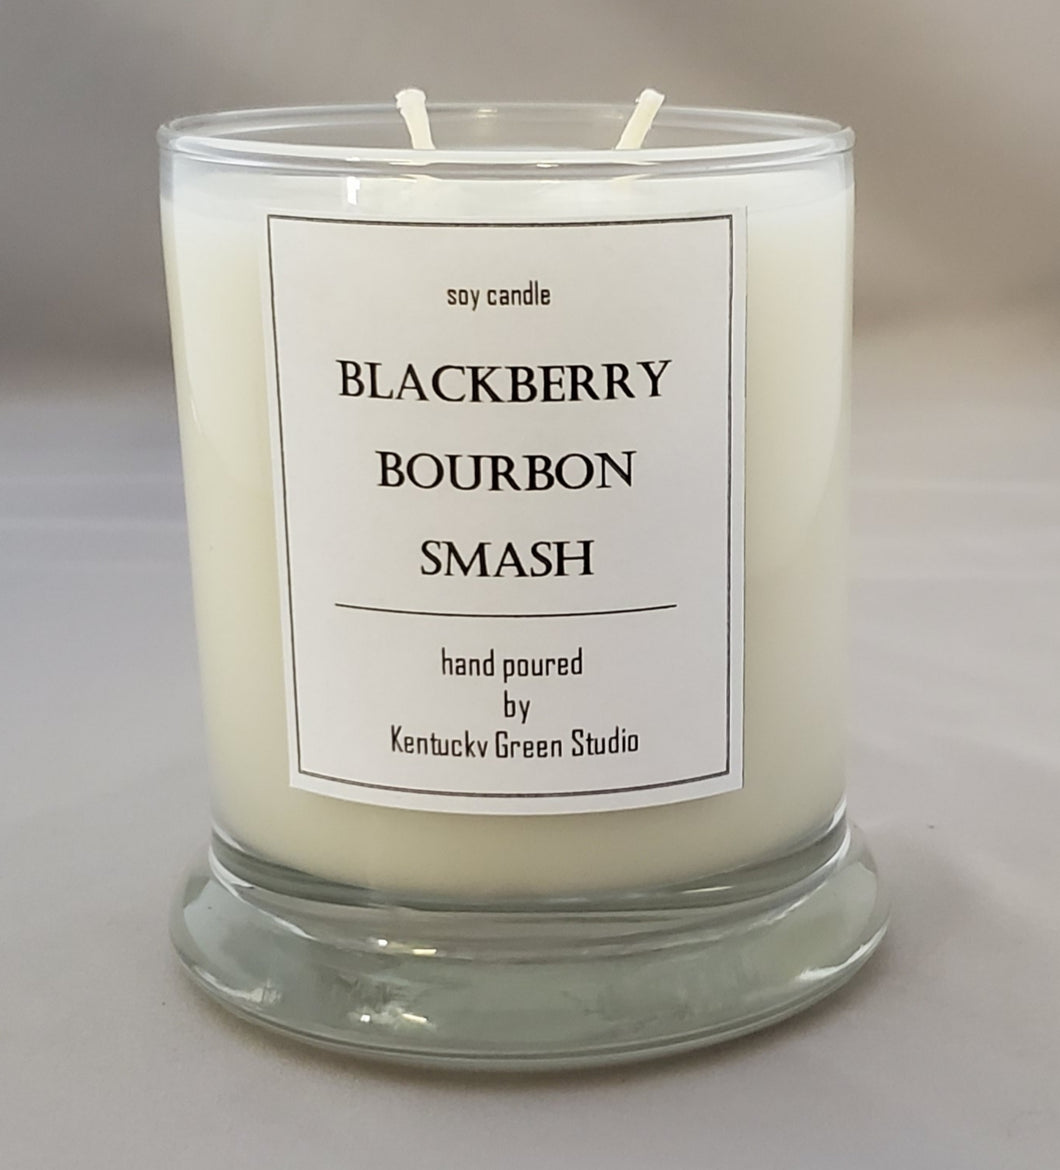 Blackberry Bourbon Smash Soy Candle